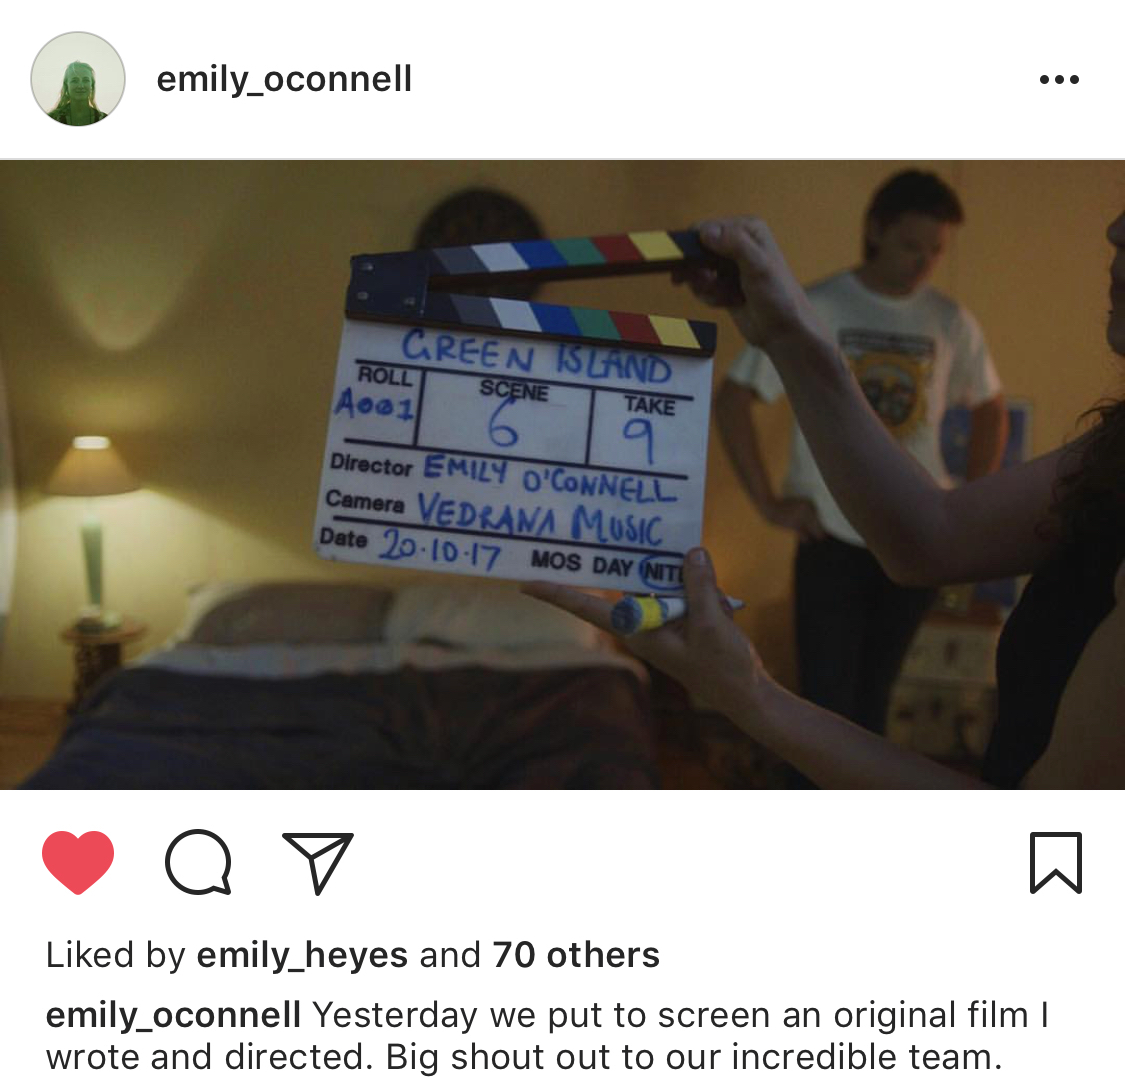 Instagram post from director Emily O'Connell.